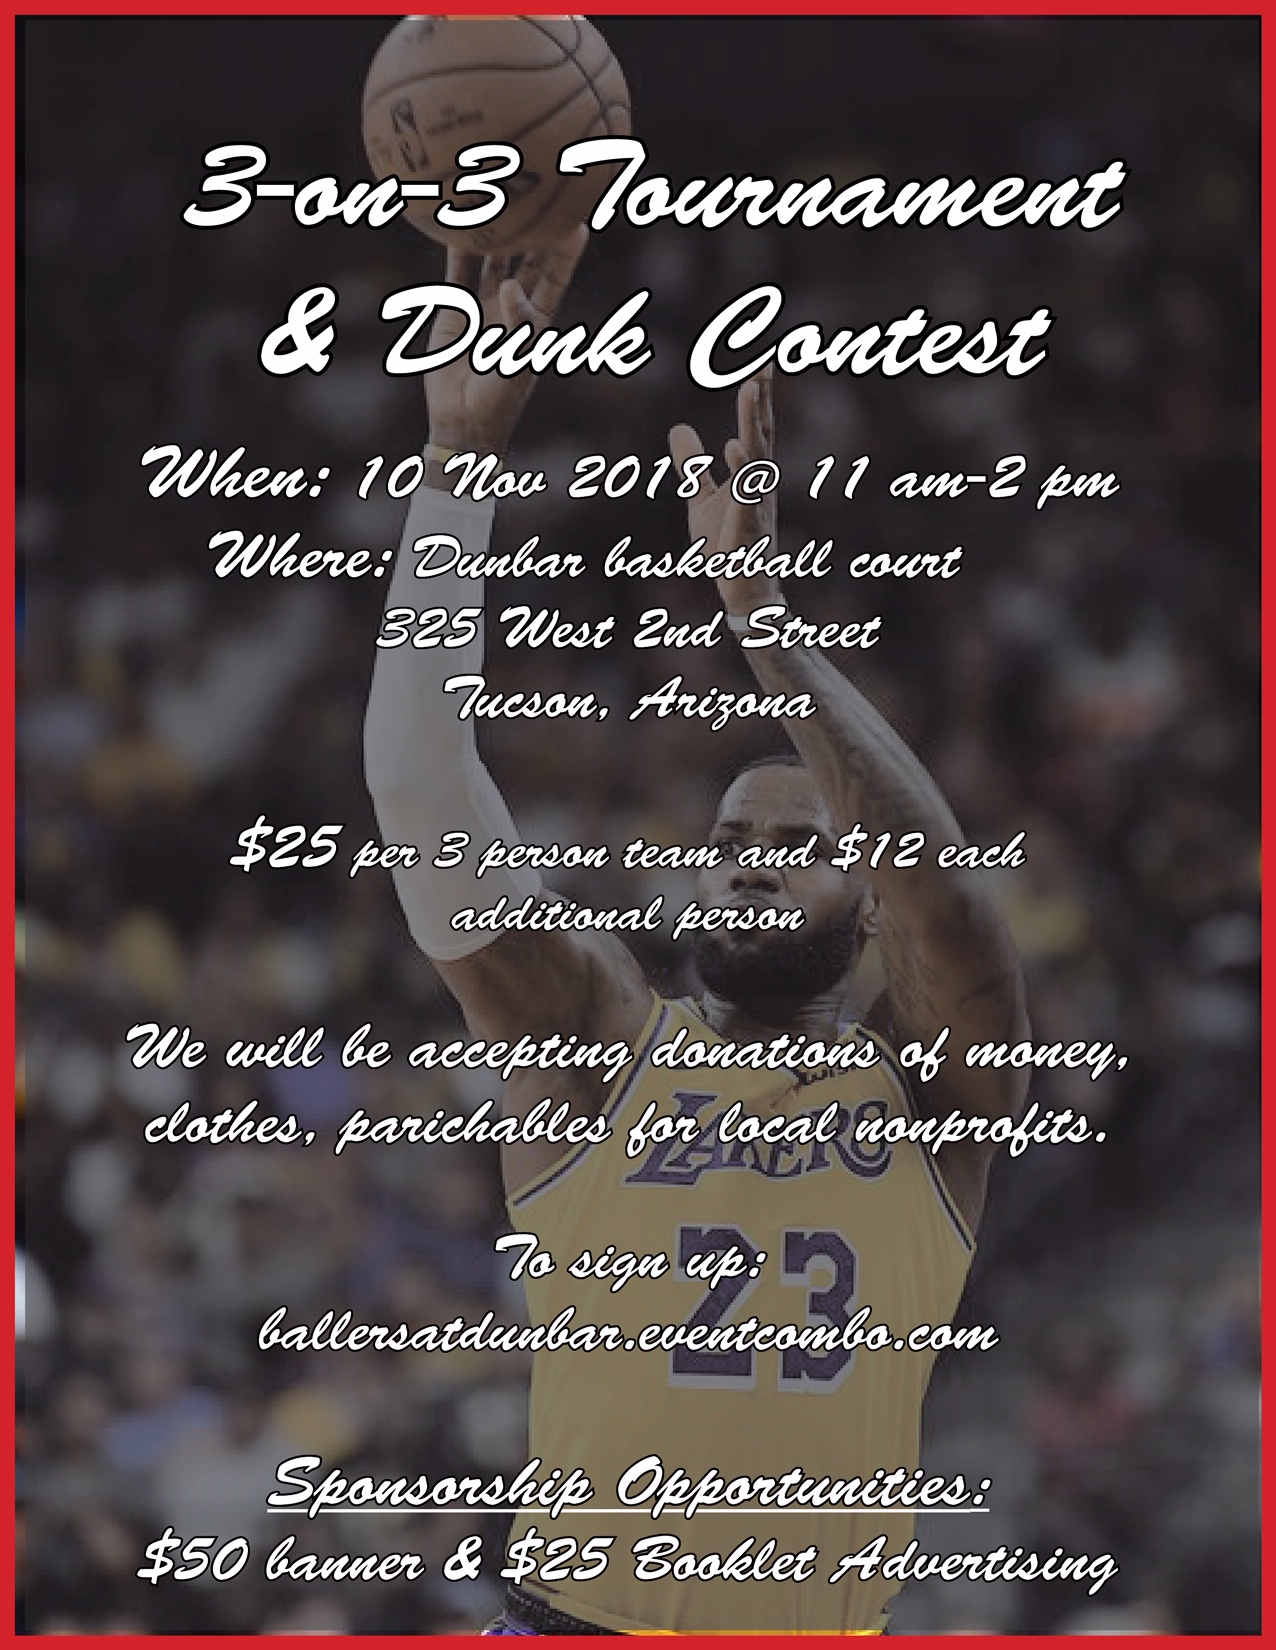 3-on-3 Tournament & Dunk Contest